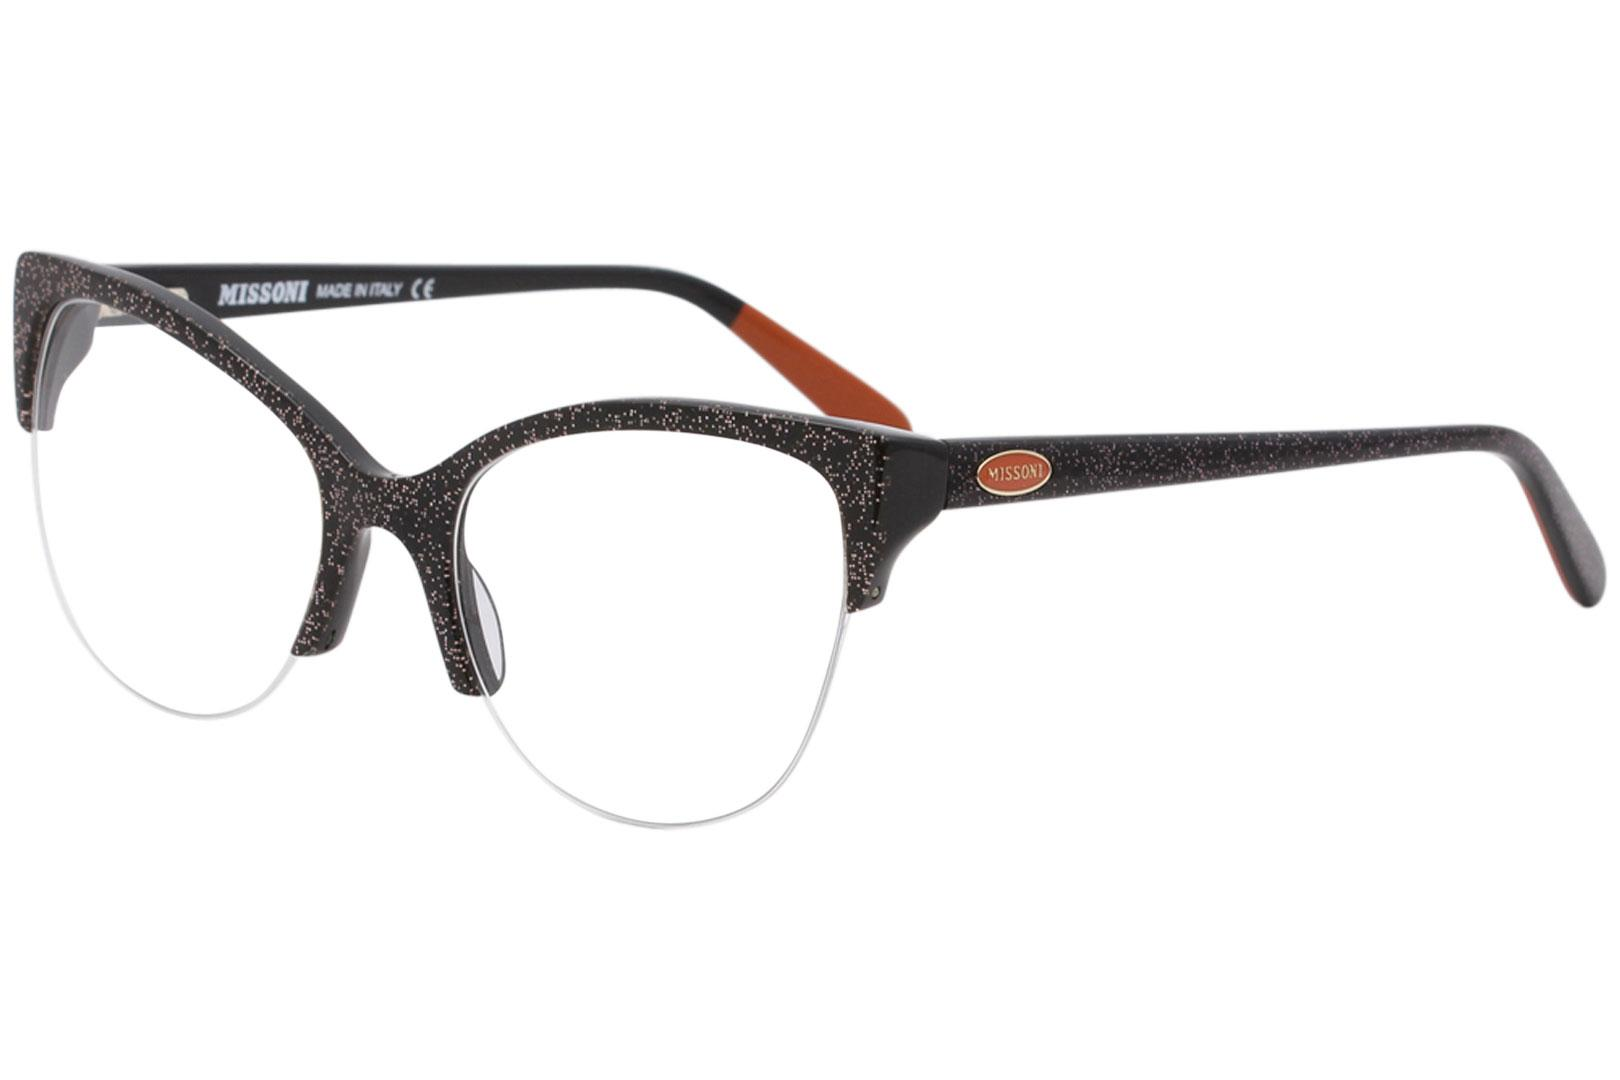 Image of Missoni Women's Eyeglasses MI316V MI/316/V Full Rim Optical Frame 55mm - 04 Black/Multi - Lens 55 Bridge 19 Temple 140mm